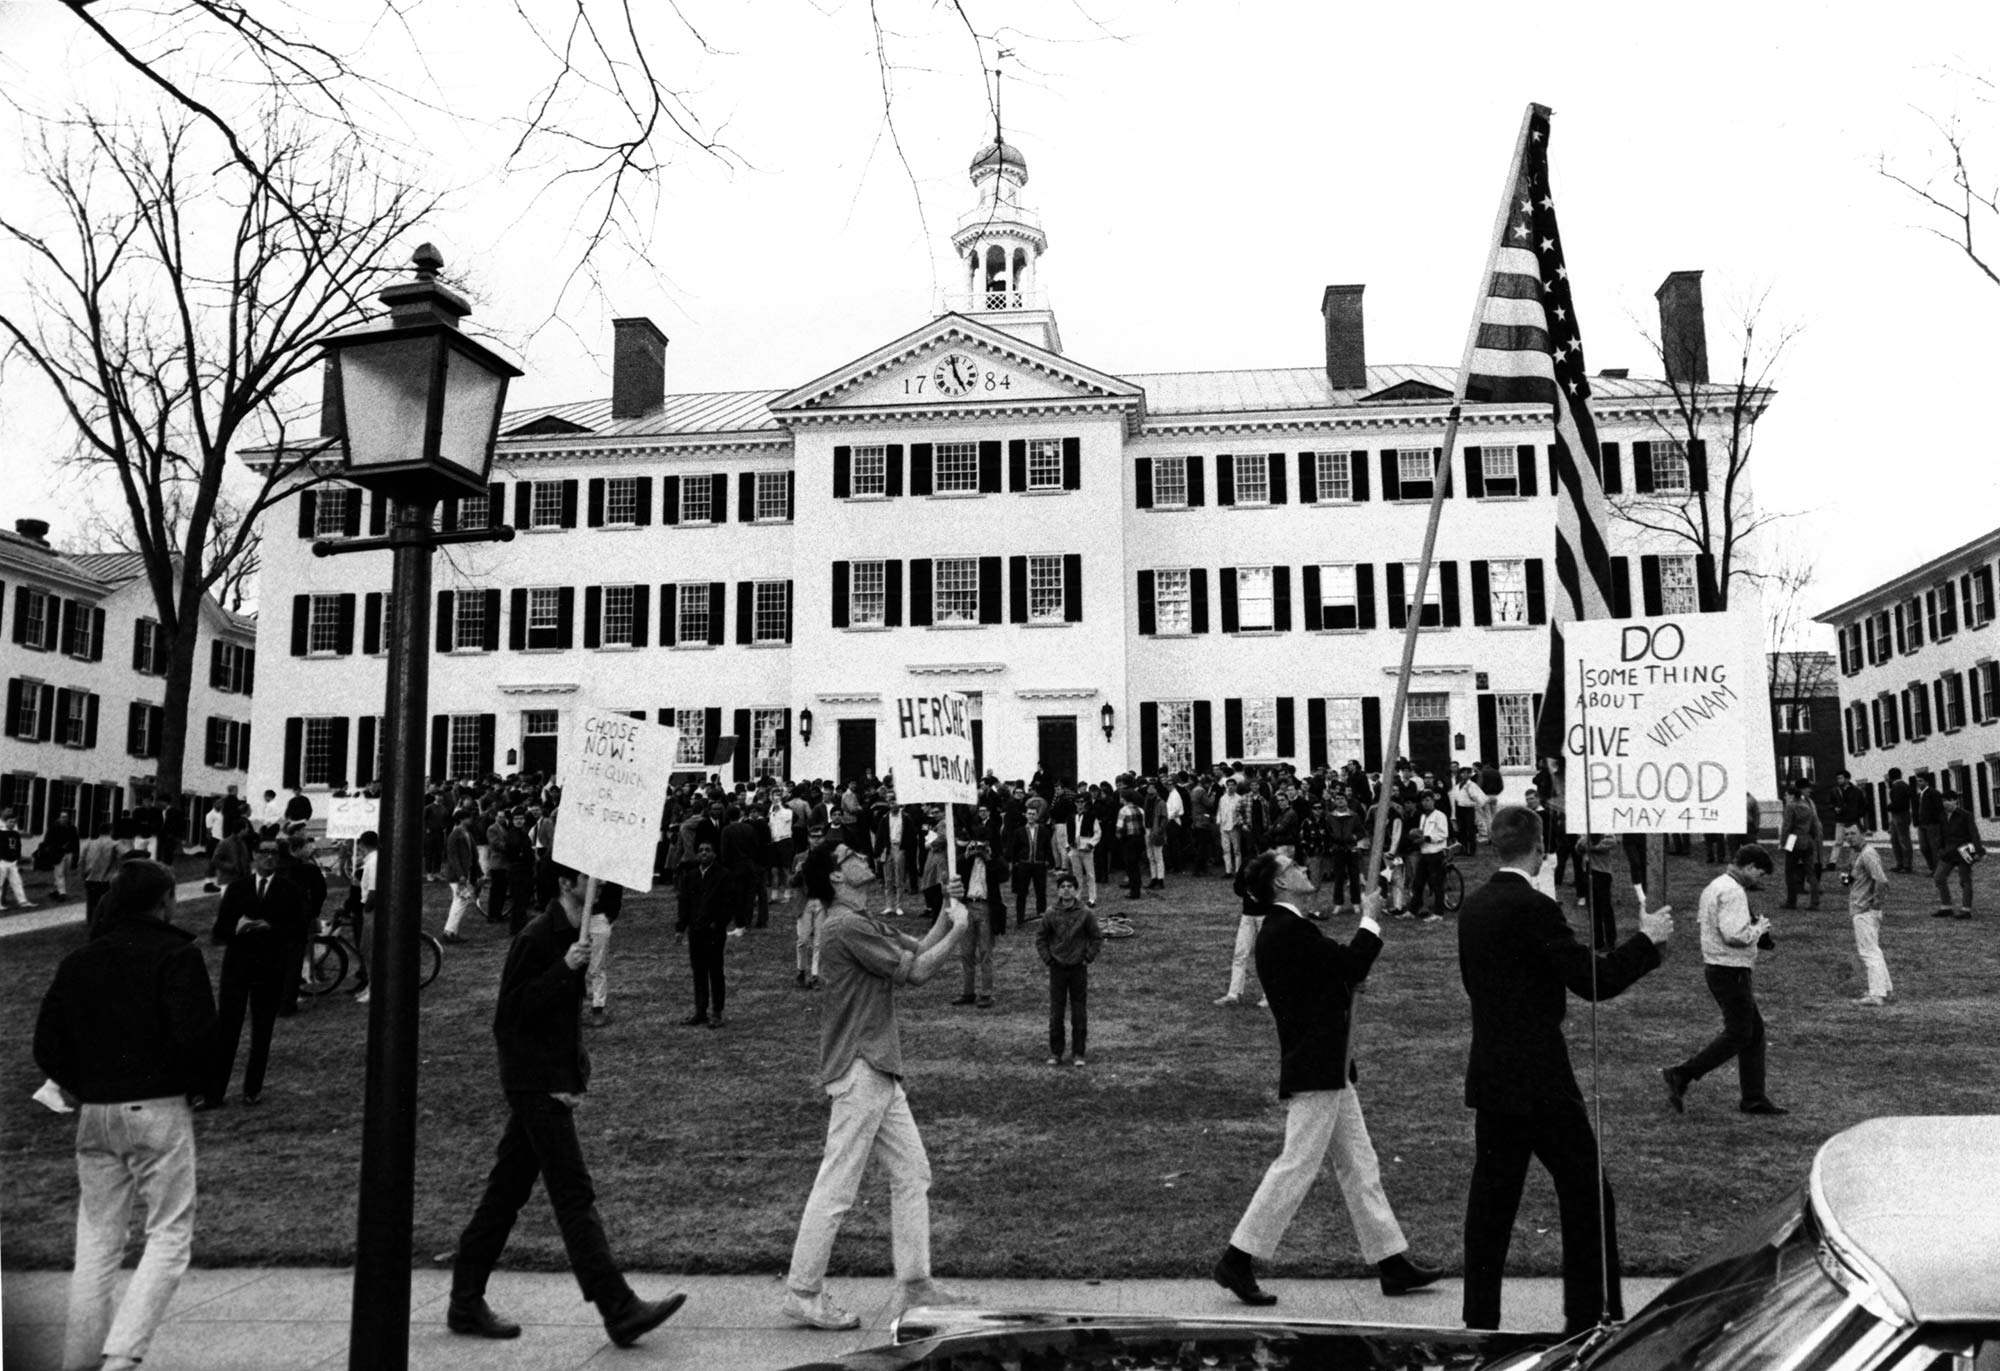 Anti-war protest outside Dartmouth Hall, April 14, 1966